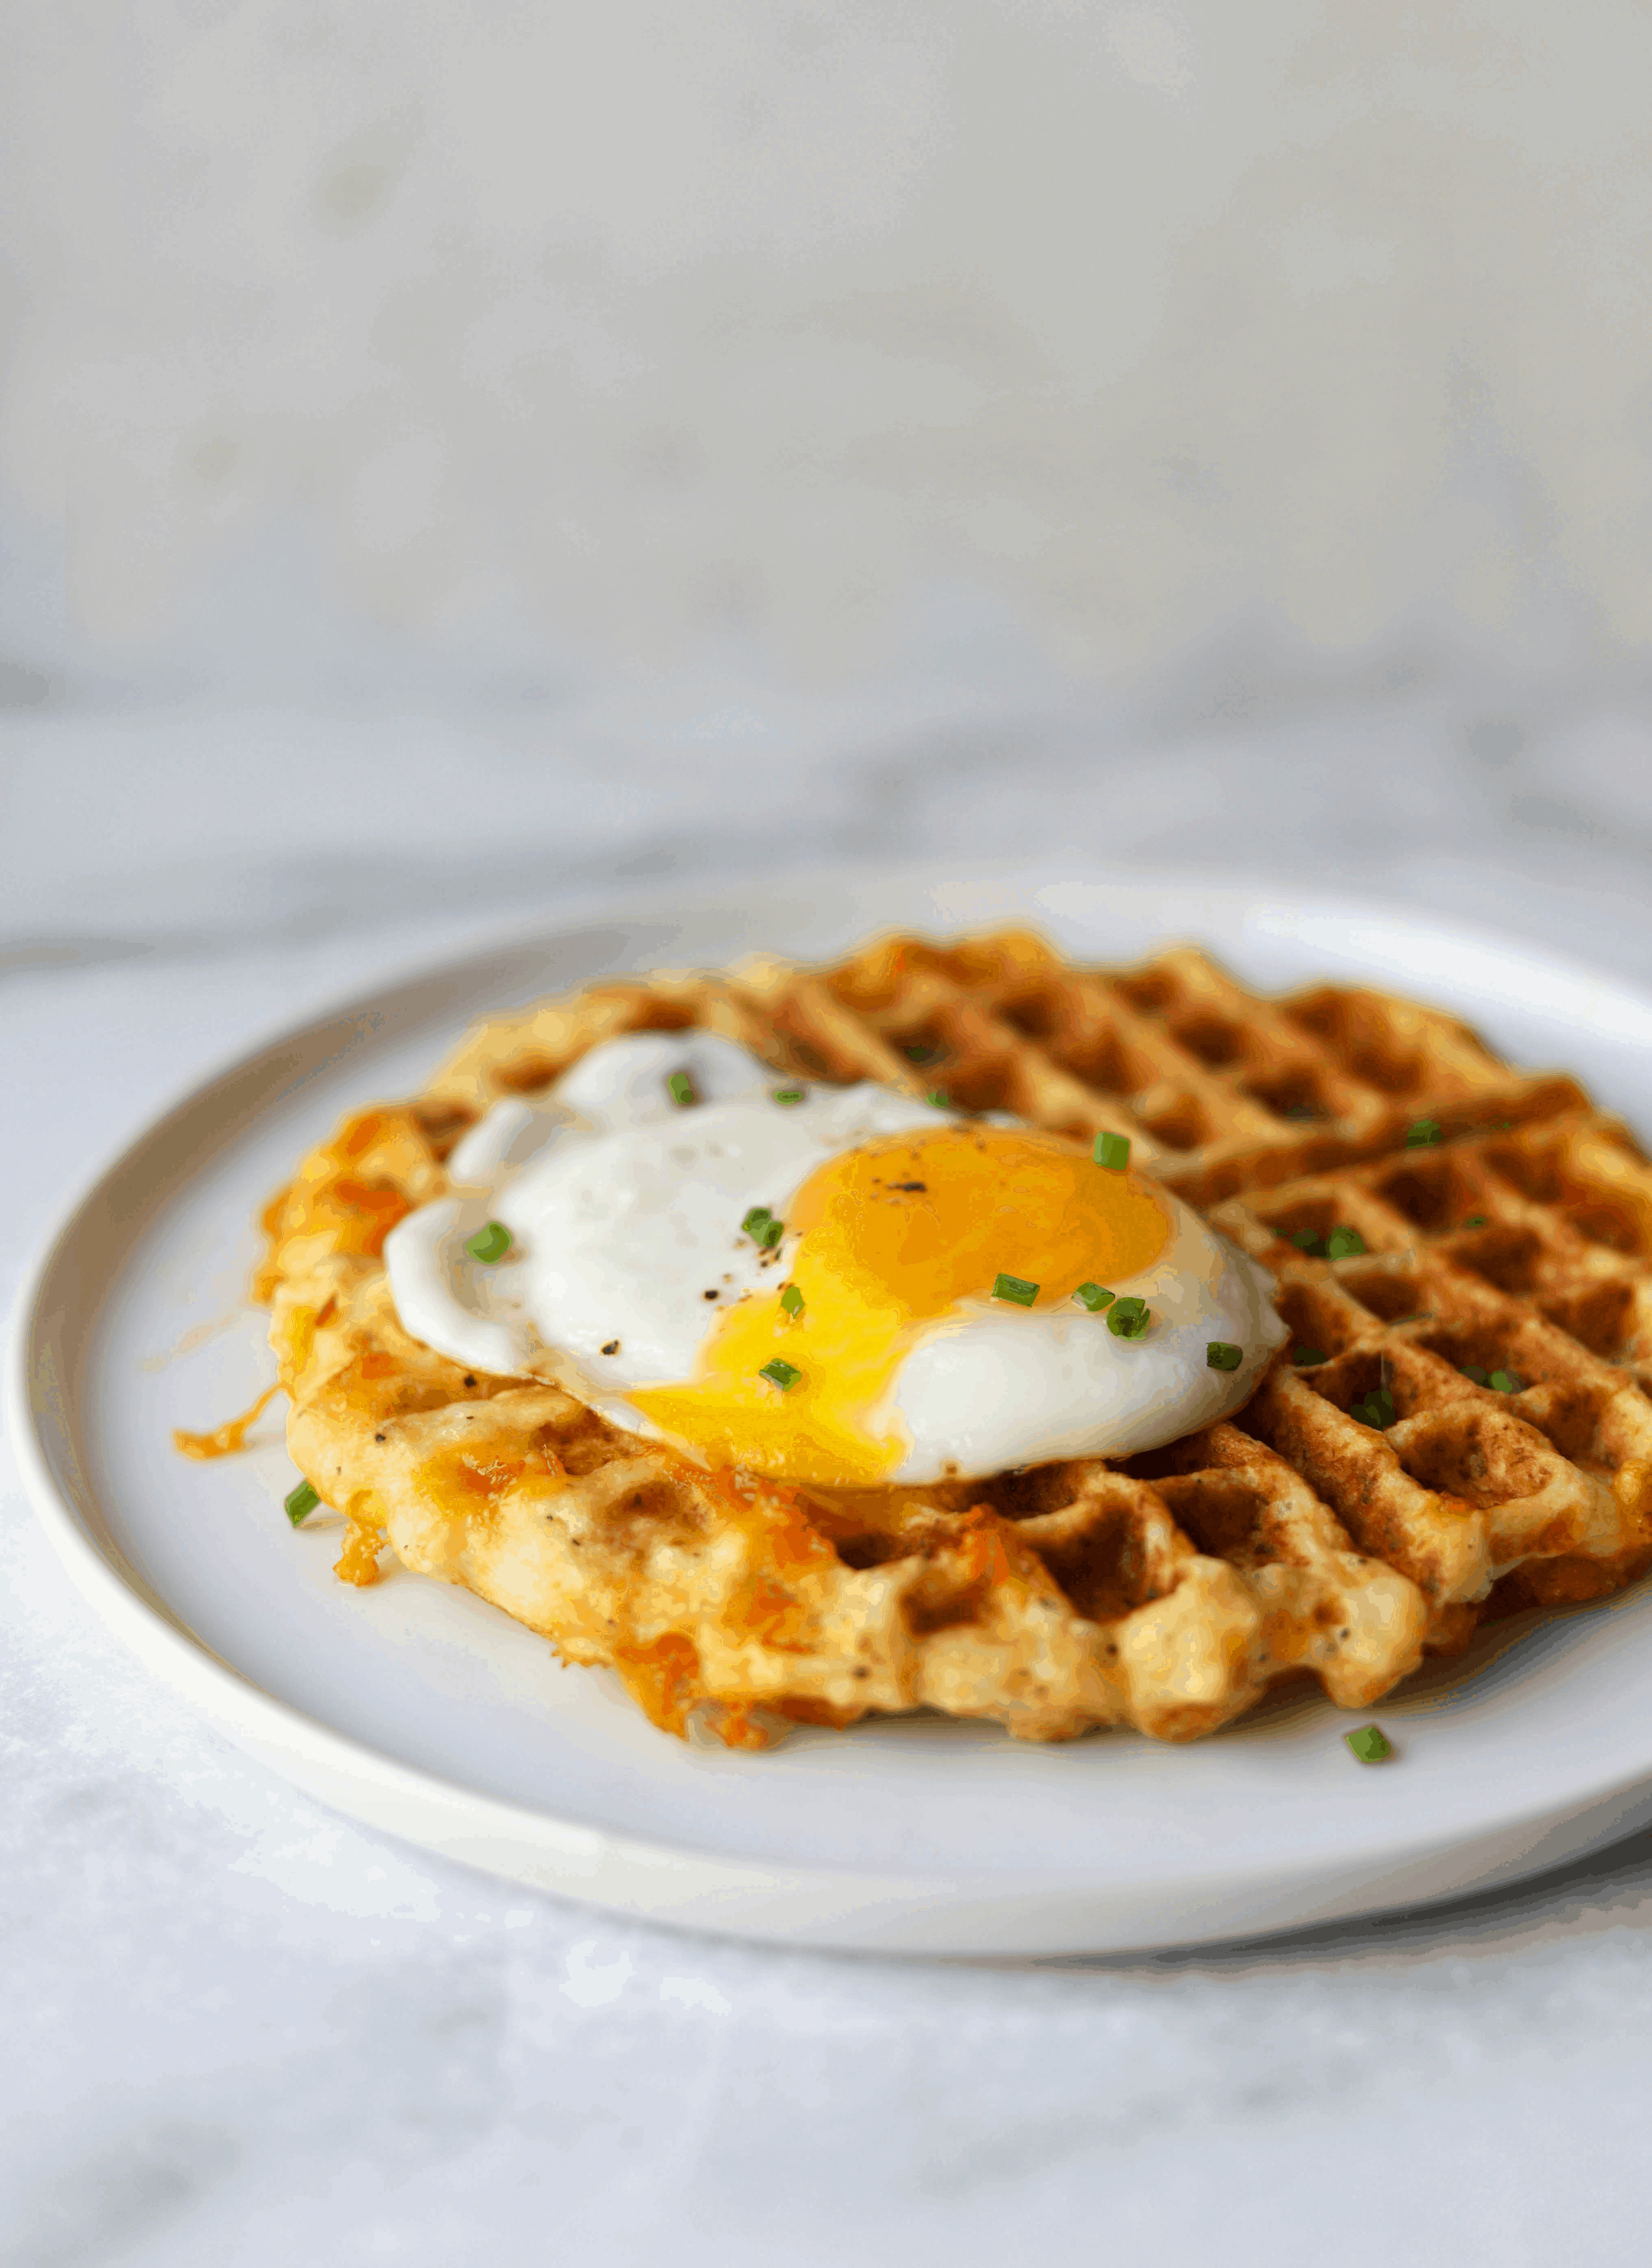 A side shot of a cauliflower waffle with a fried egg and chives on top.